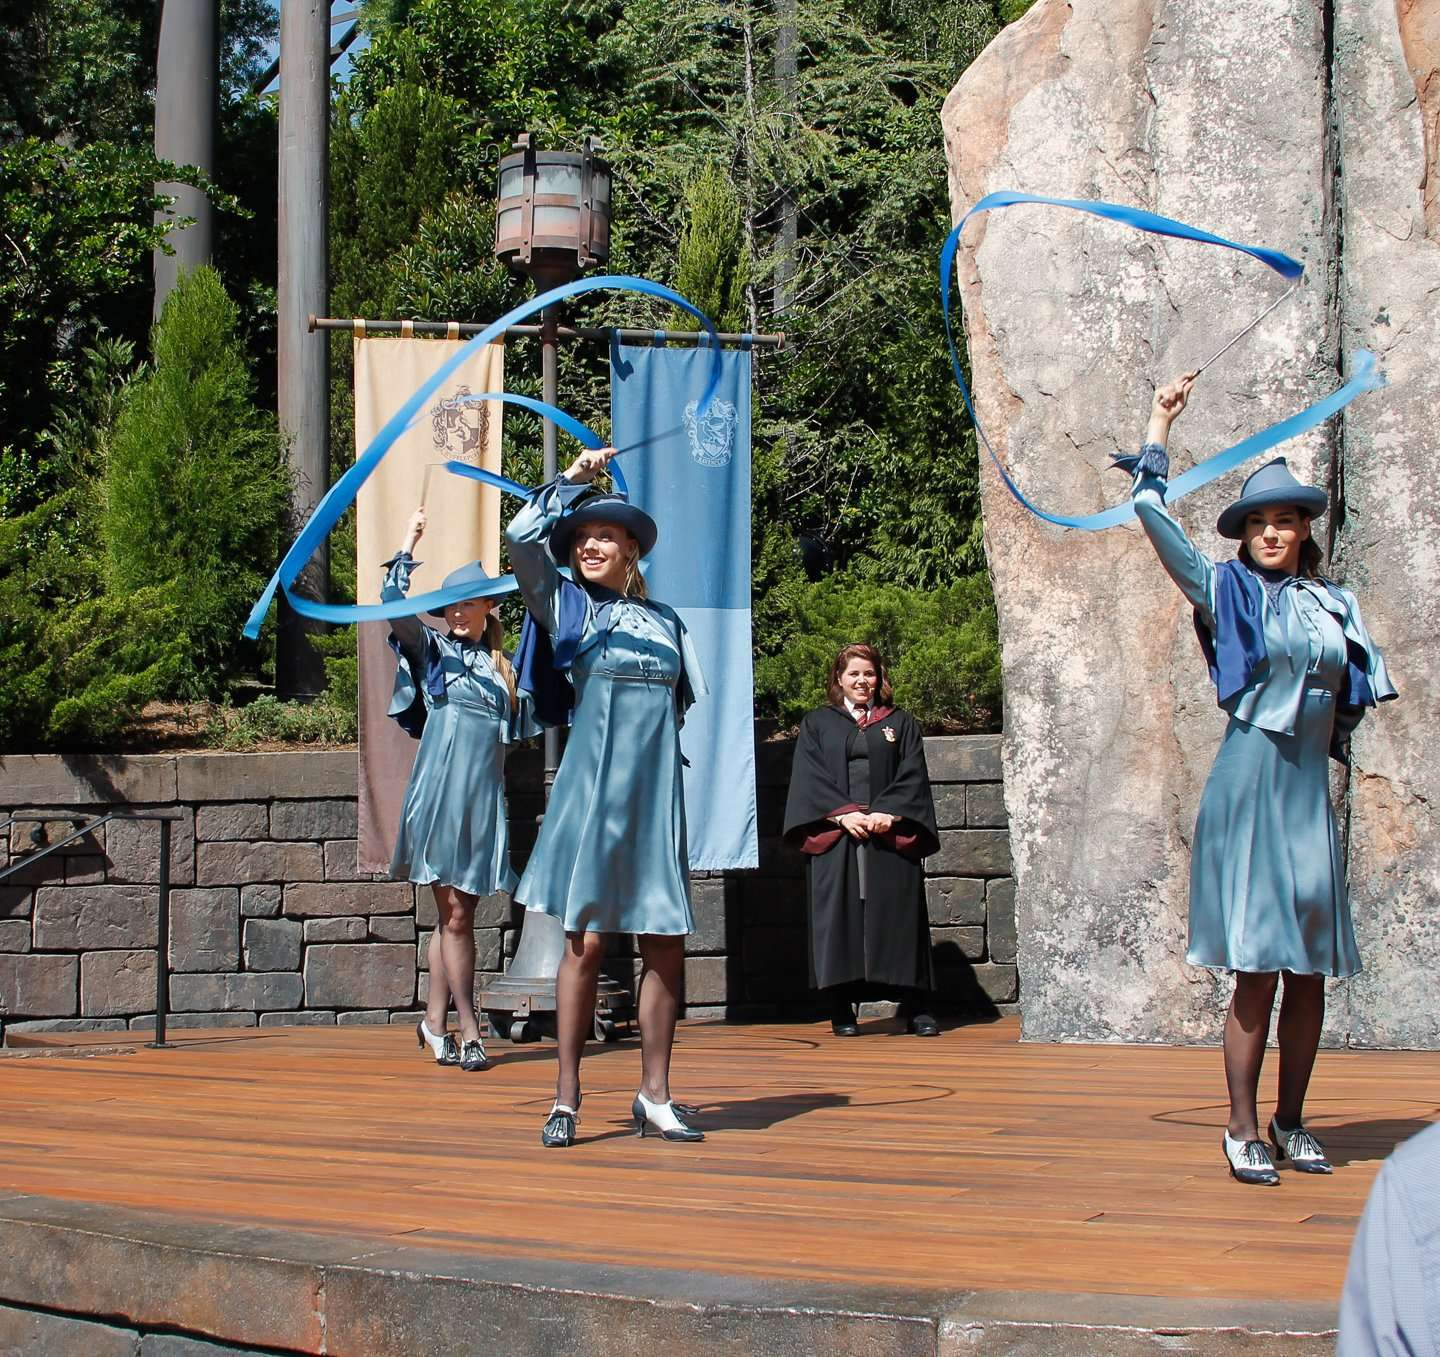 Everything about the Wizarding World of Harry Potter Beauxbatons girls waving banners